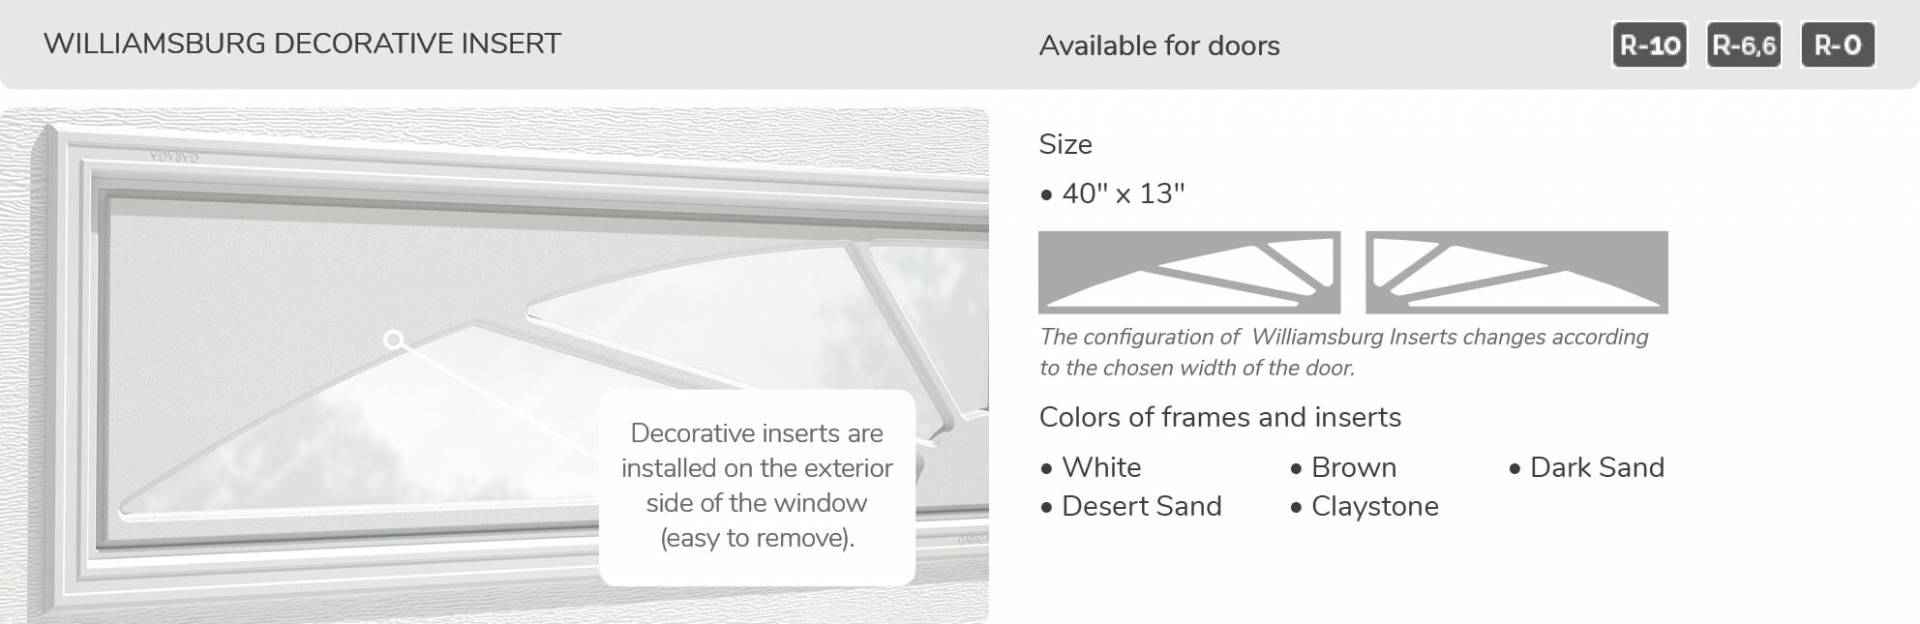 "Williamsburg Decorative Insert, 40"" x 13"", available for doors R-10, R-6.6, R-0"